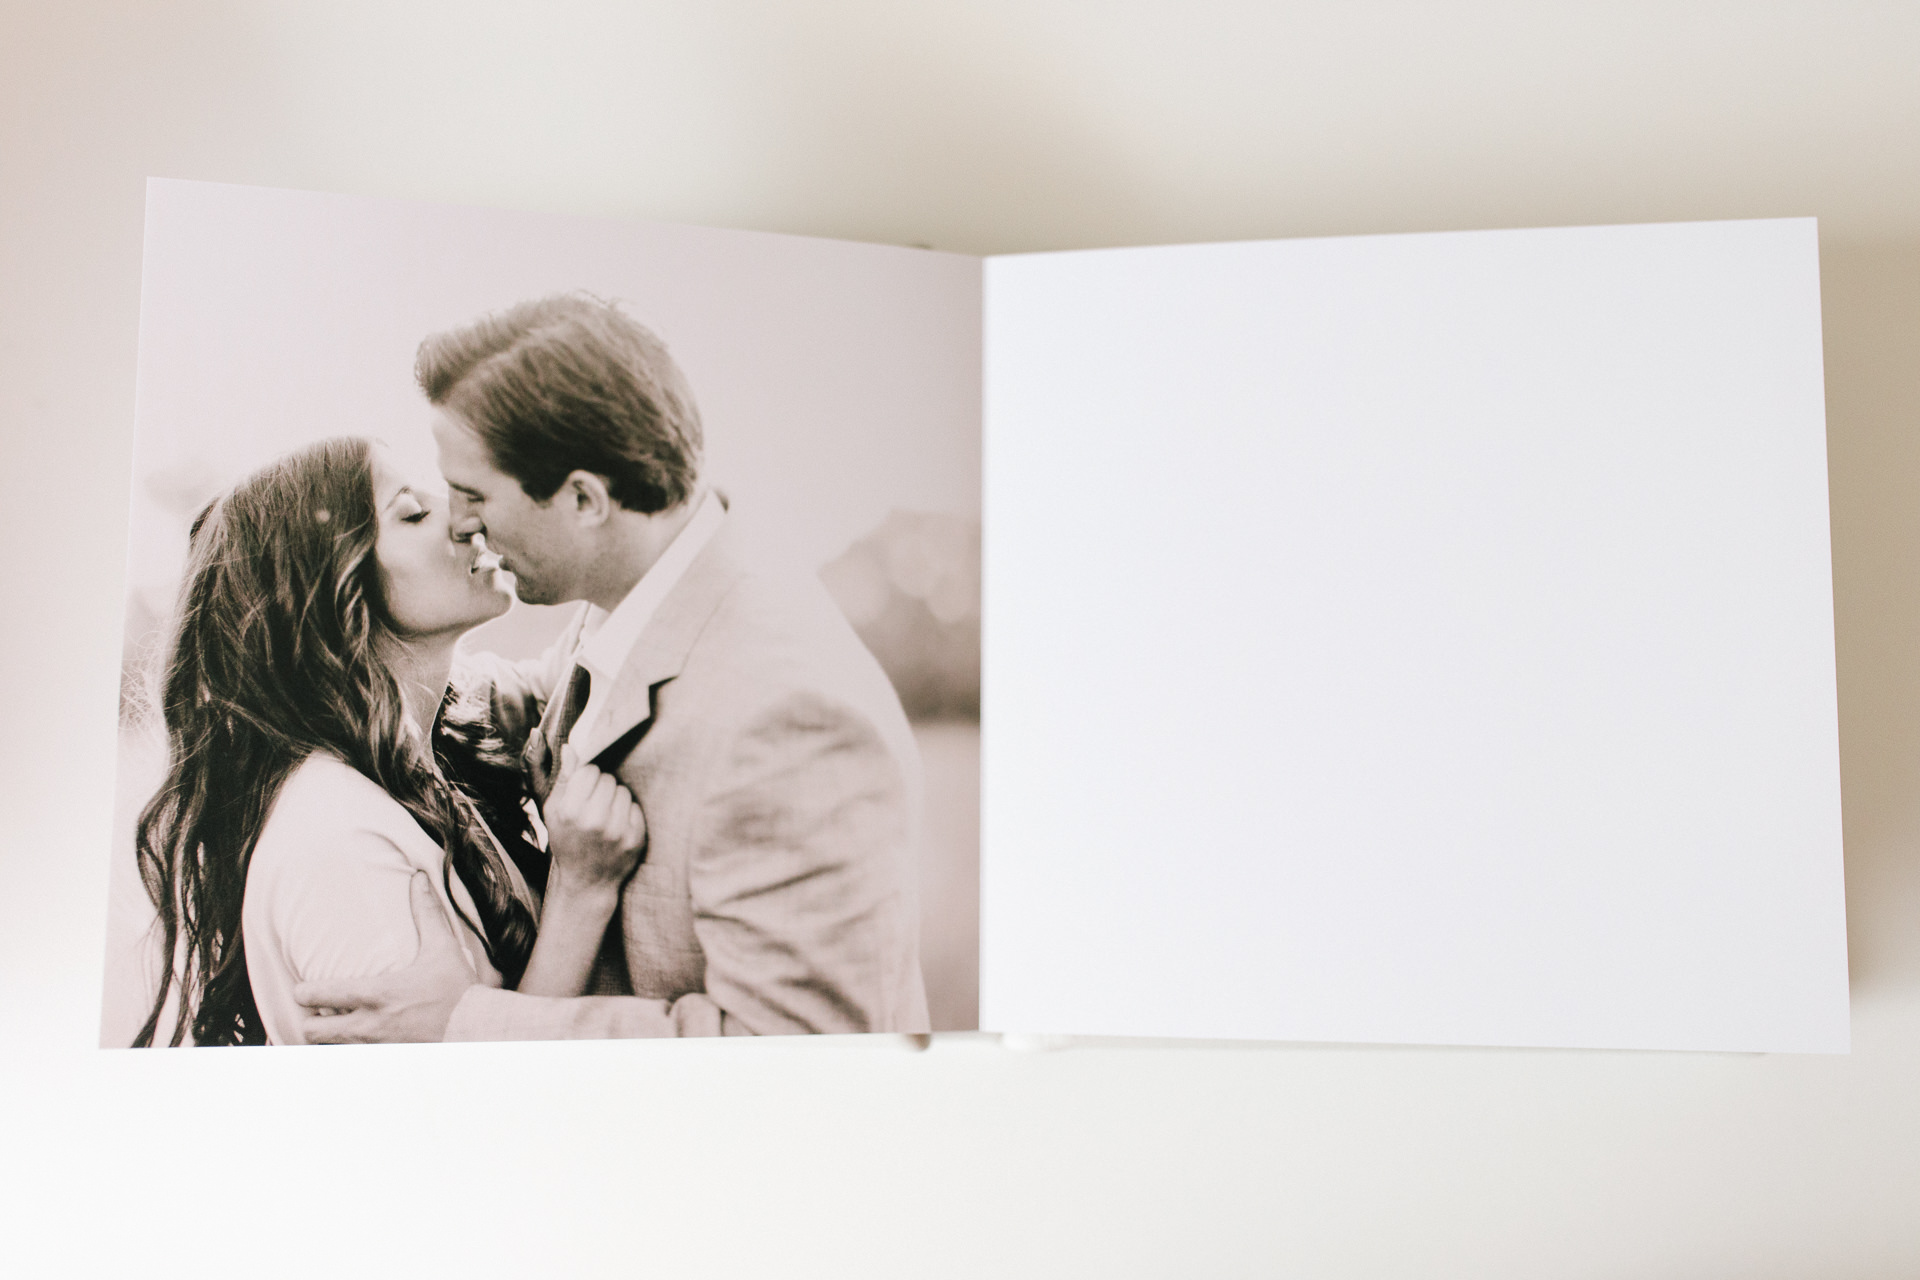 The guest book is a killer way to show off the amazing images.